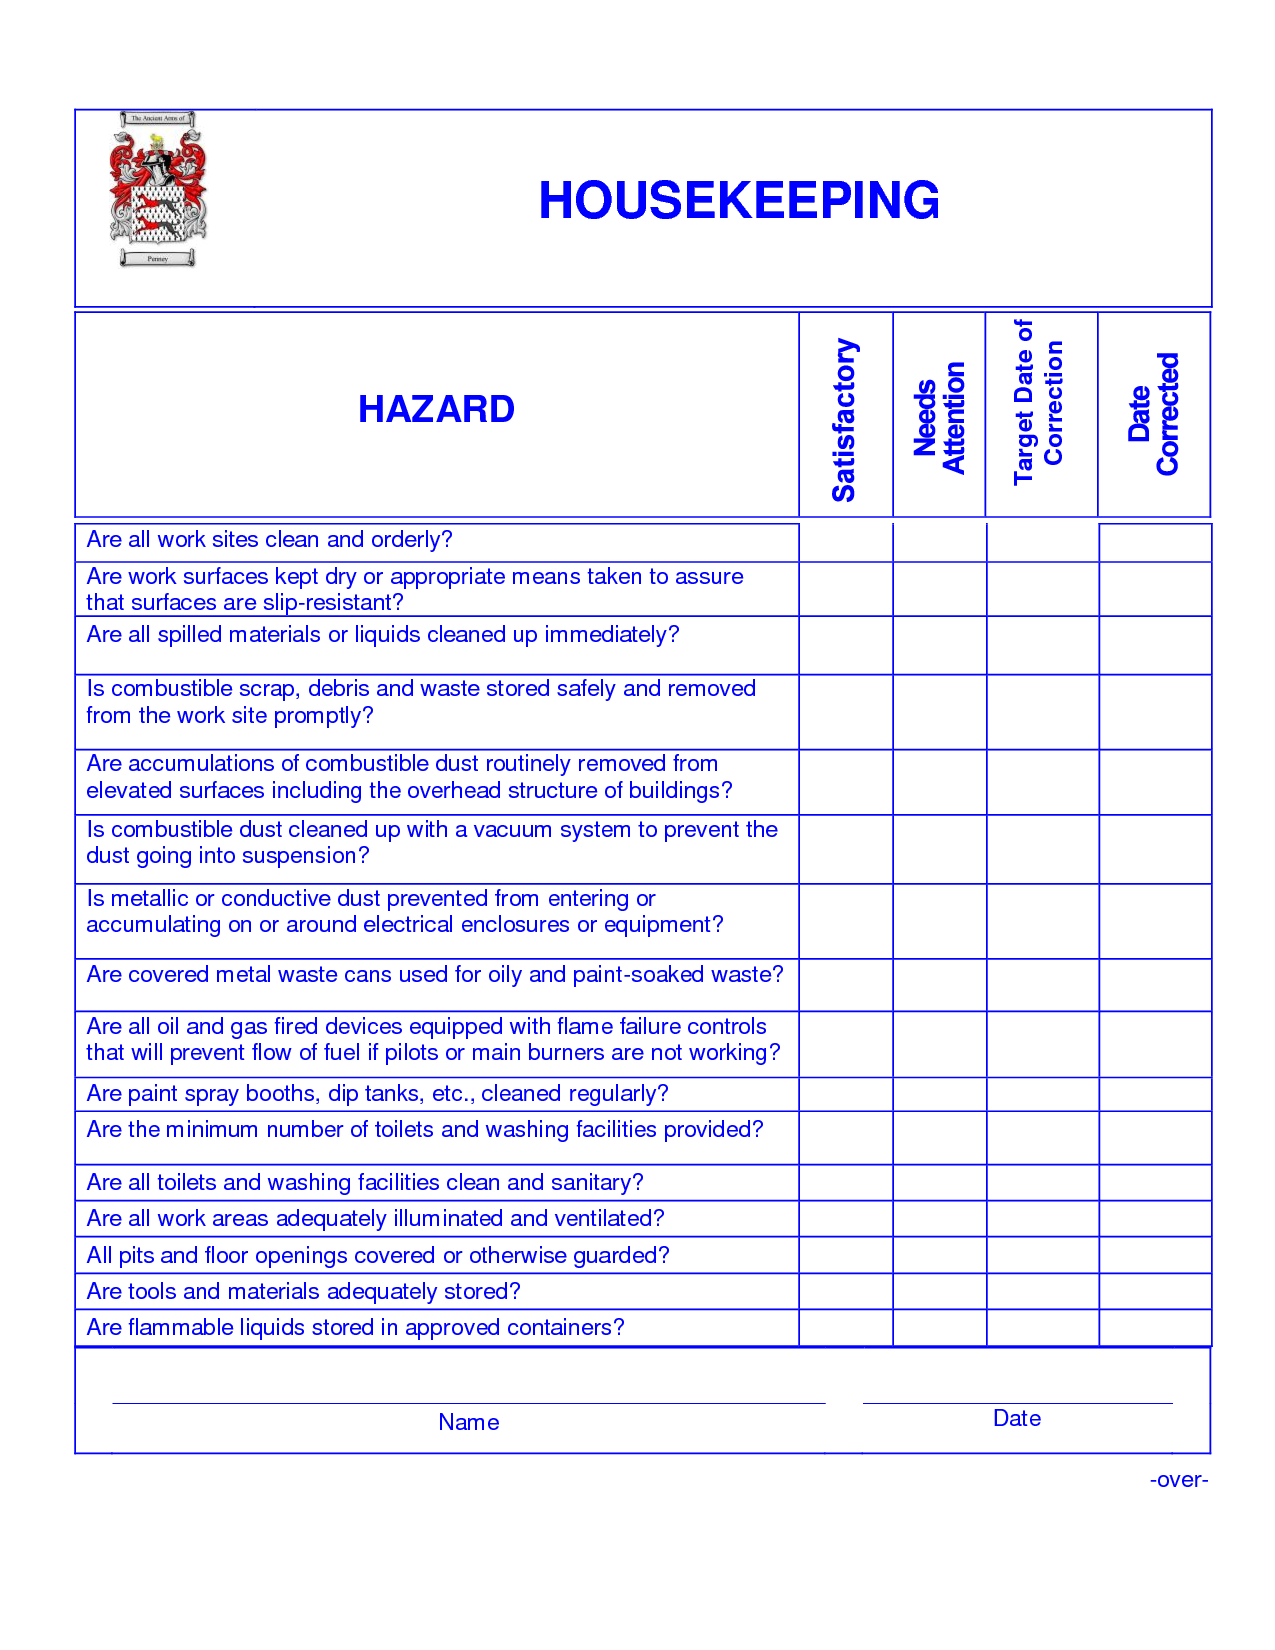 Housekeeping Openings Housekeeping Cleaning Checklist Hotel Housekeeping Housekeeper